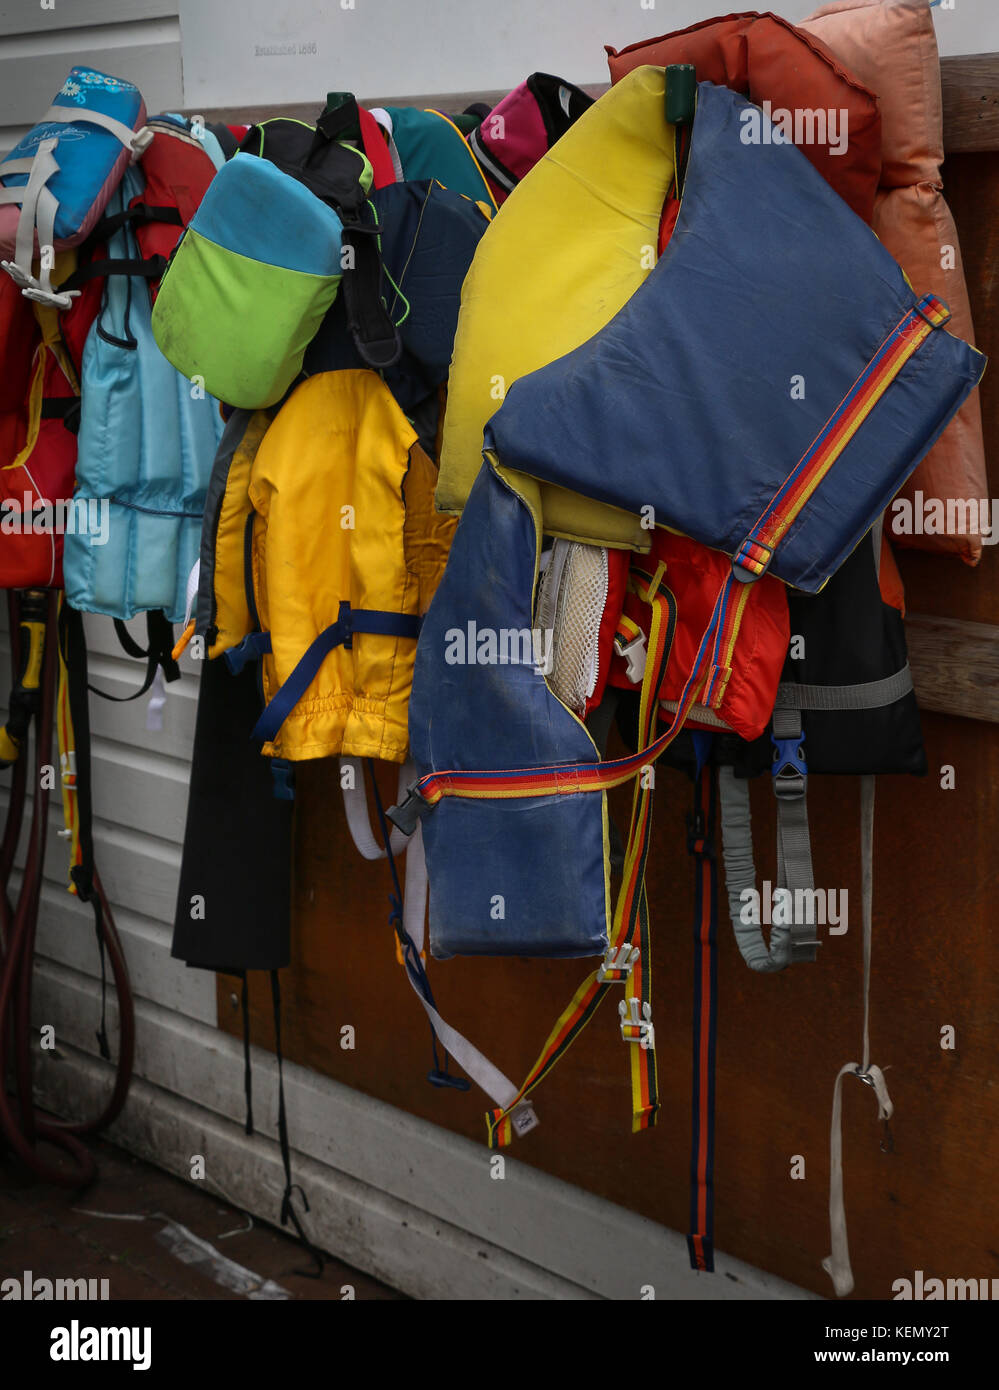 Many colorful life jackets of varying sizes hung  helter-skelter on knobs on an outside wall near a boat yard, the - Stock Image